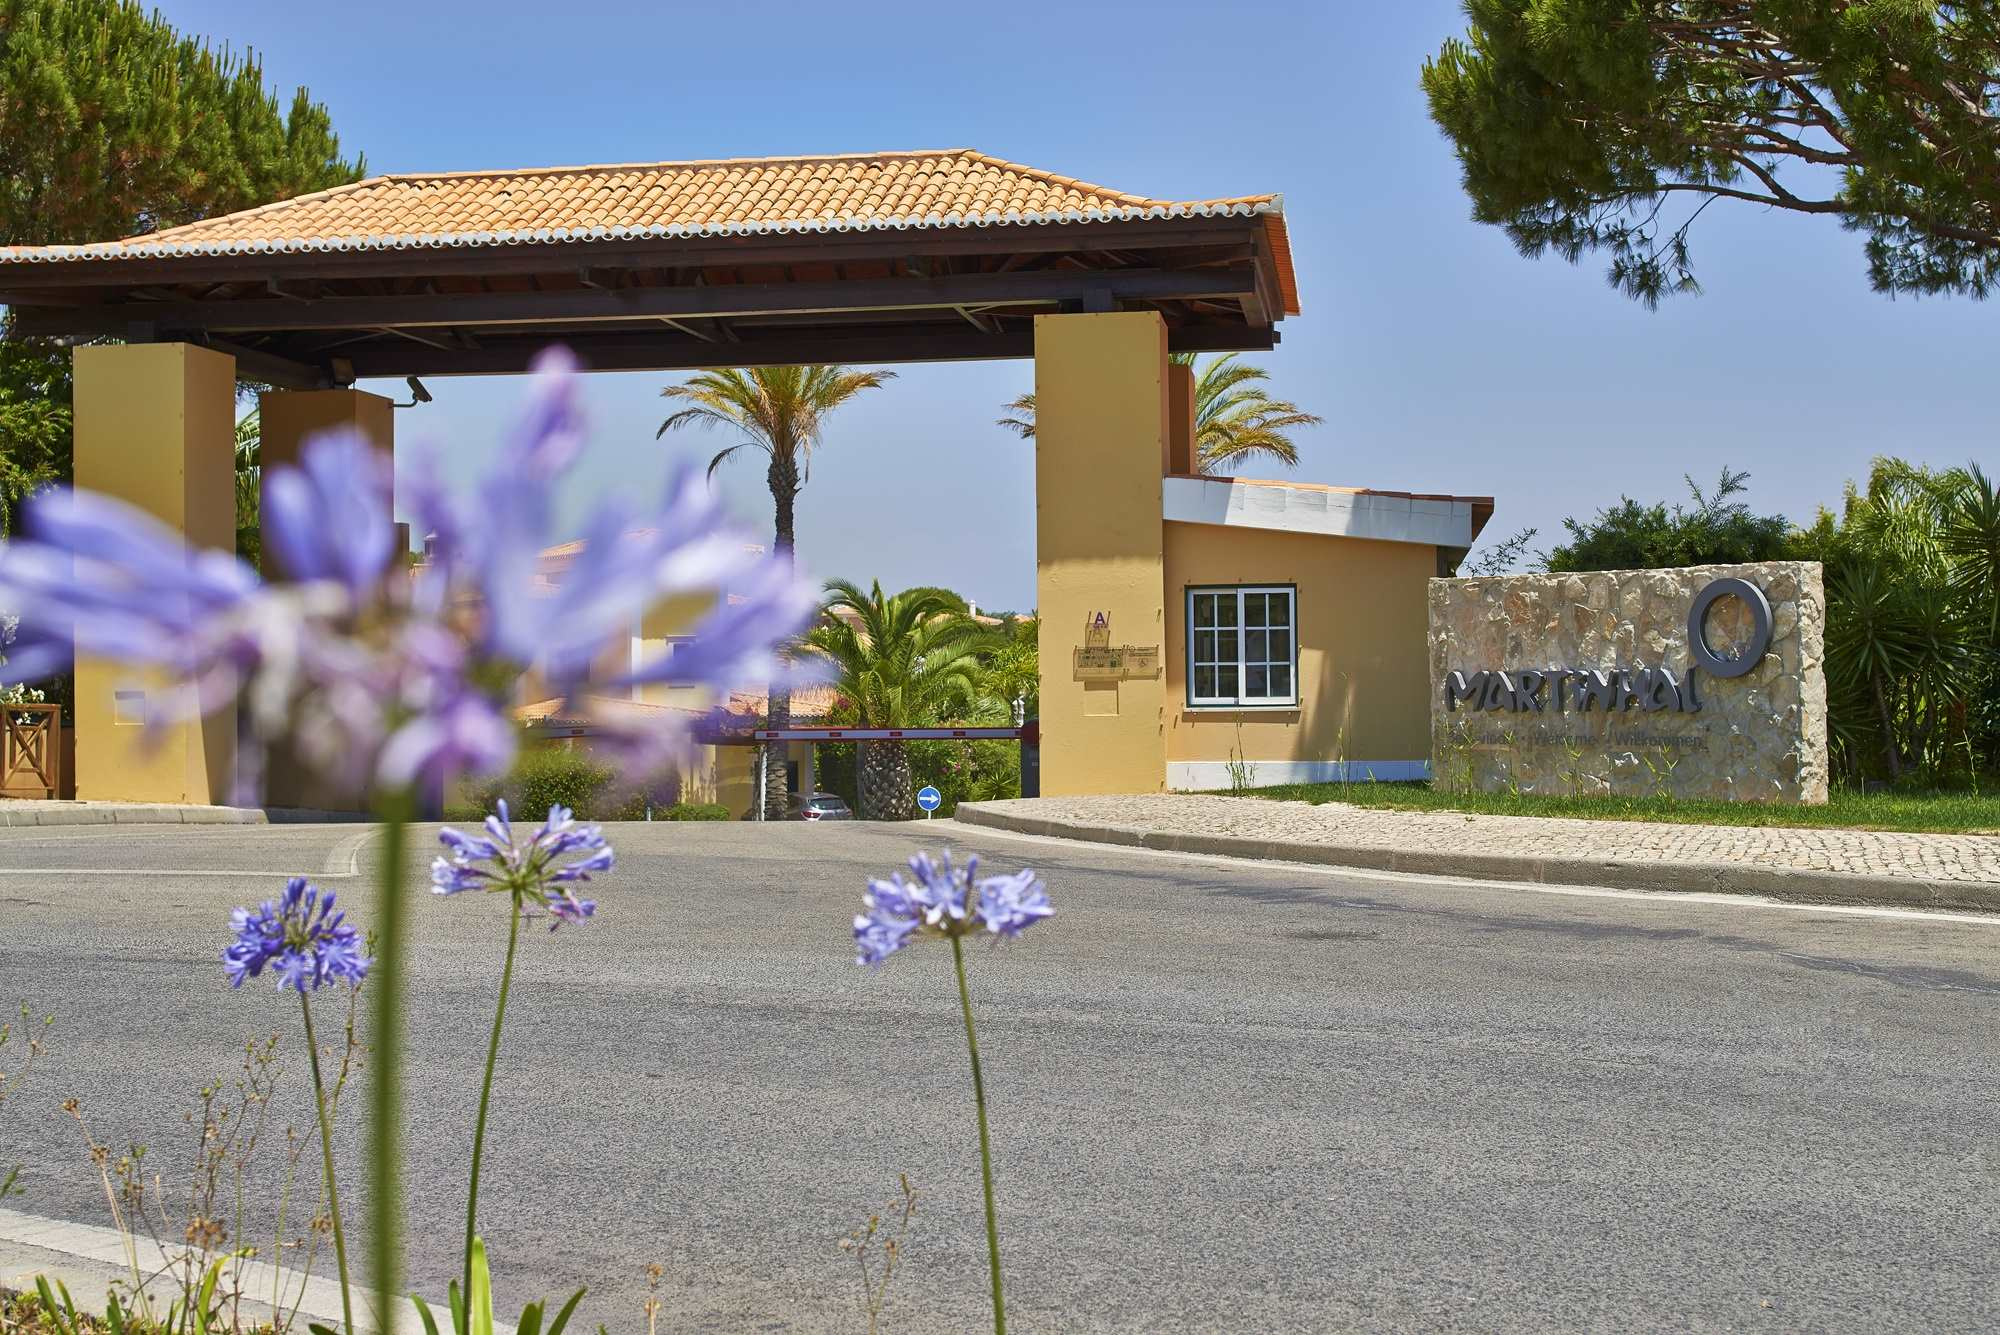 Martinhal Quinta Townhouse (3 Bedroom), 3 bedroom villa in Martinhal Quinta Resort, Algarve Photo #19